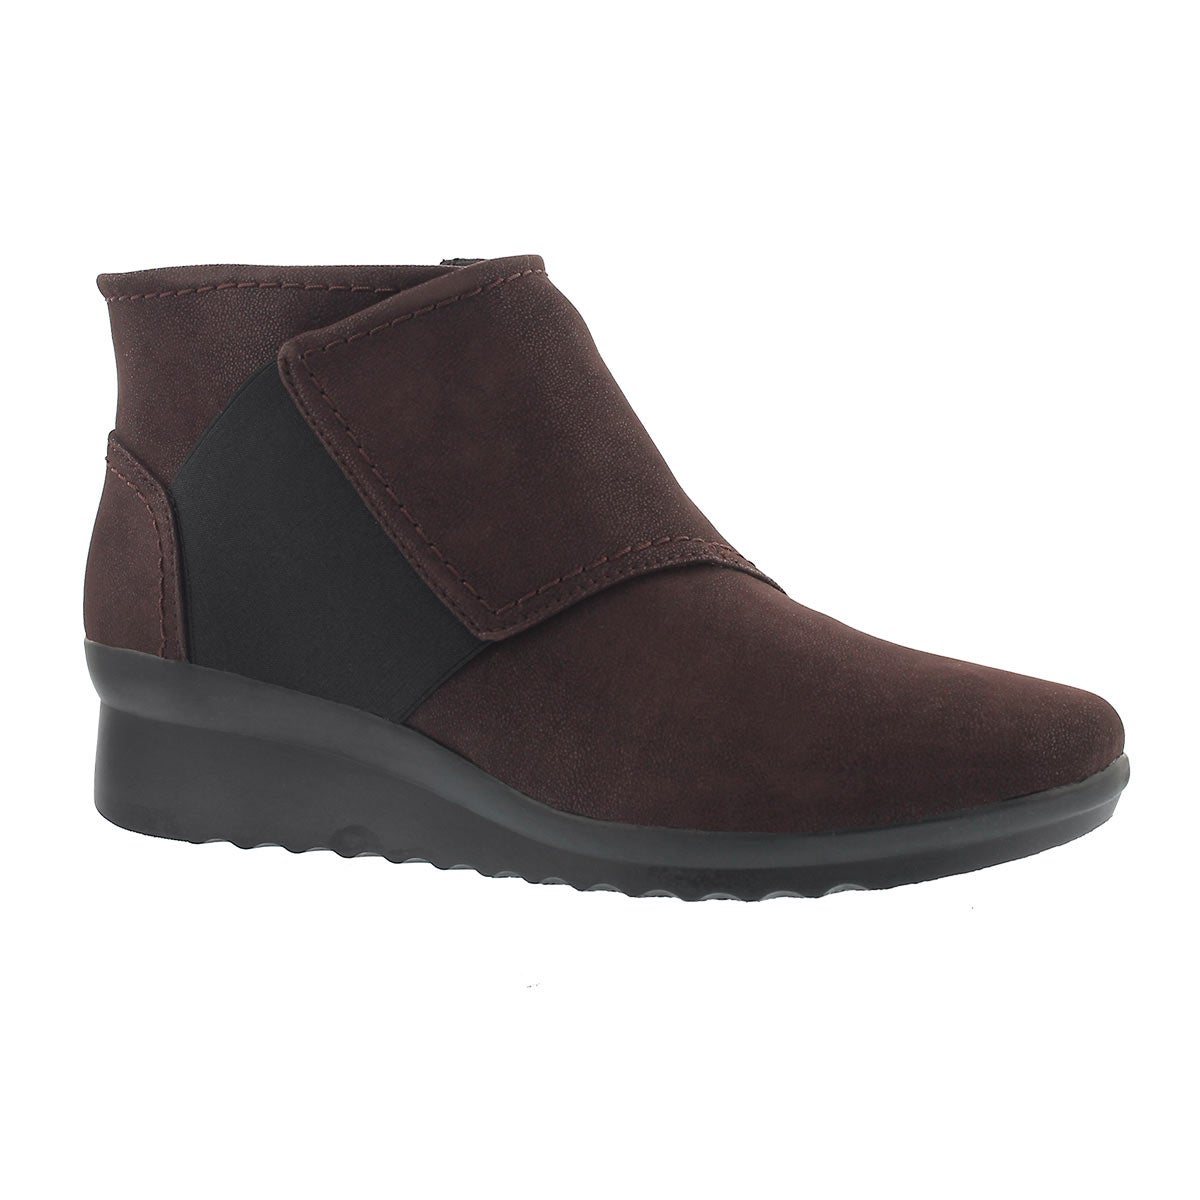 Women's CADDELL RUSH burgundy wedge boots